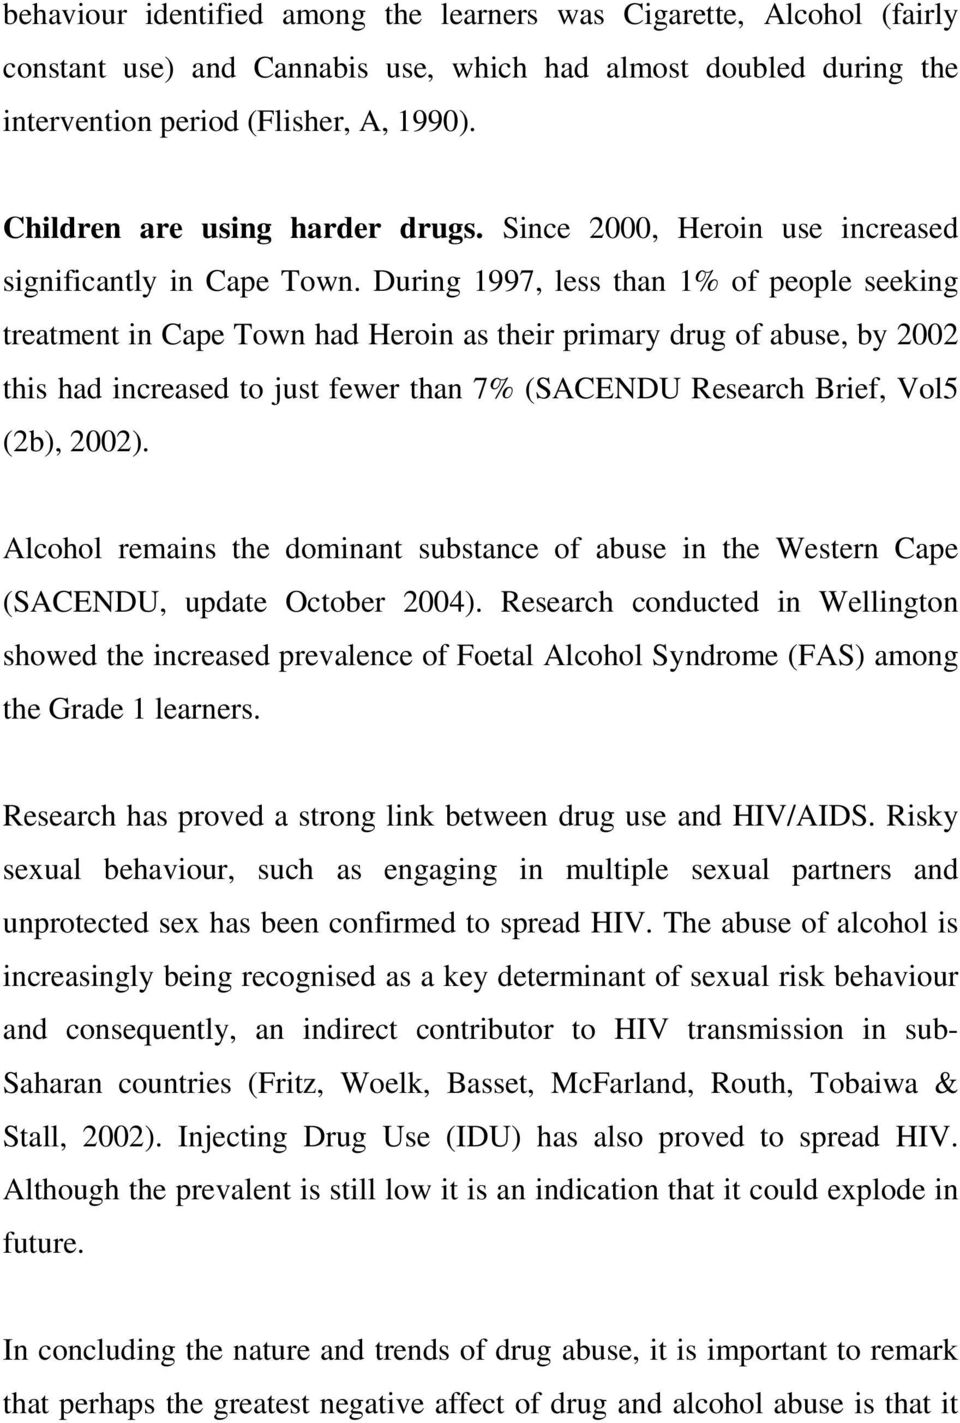 During 1997, less than 1% of people seeking treatment in Cape Town had Heroin as their primary drug of abuse, by 2002 this had increased to just fewer than 7% (SACENDU Research Brief, Vol5 (2b),